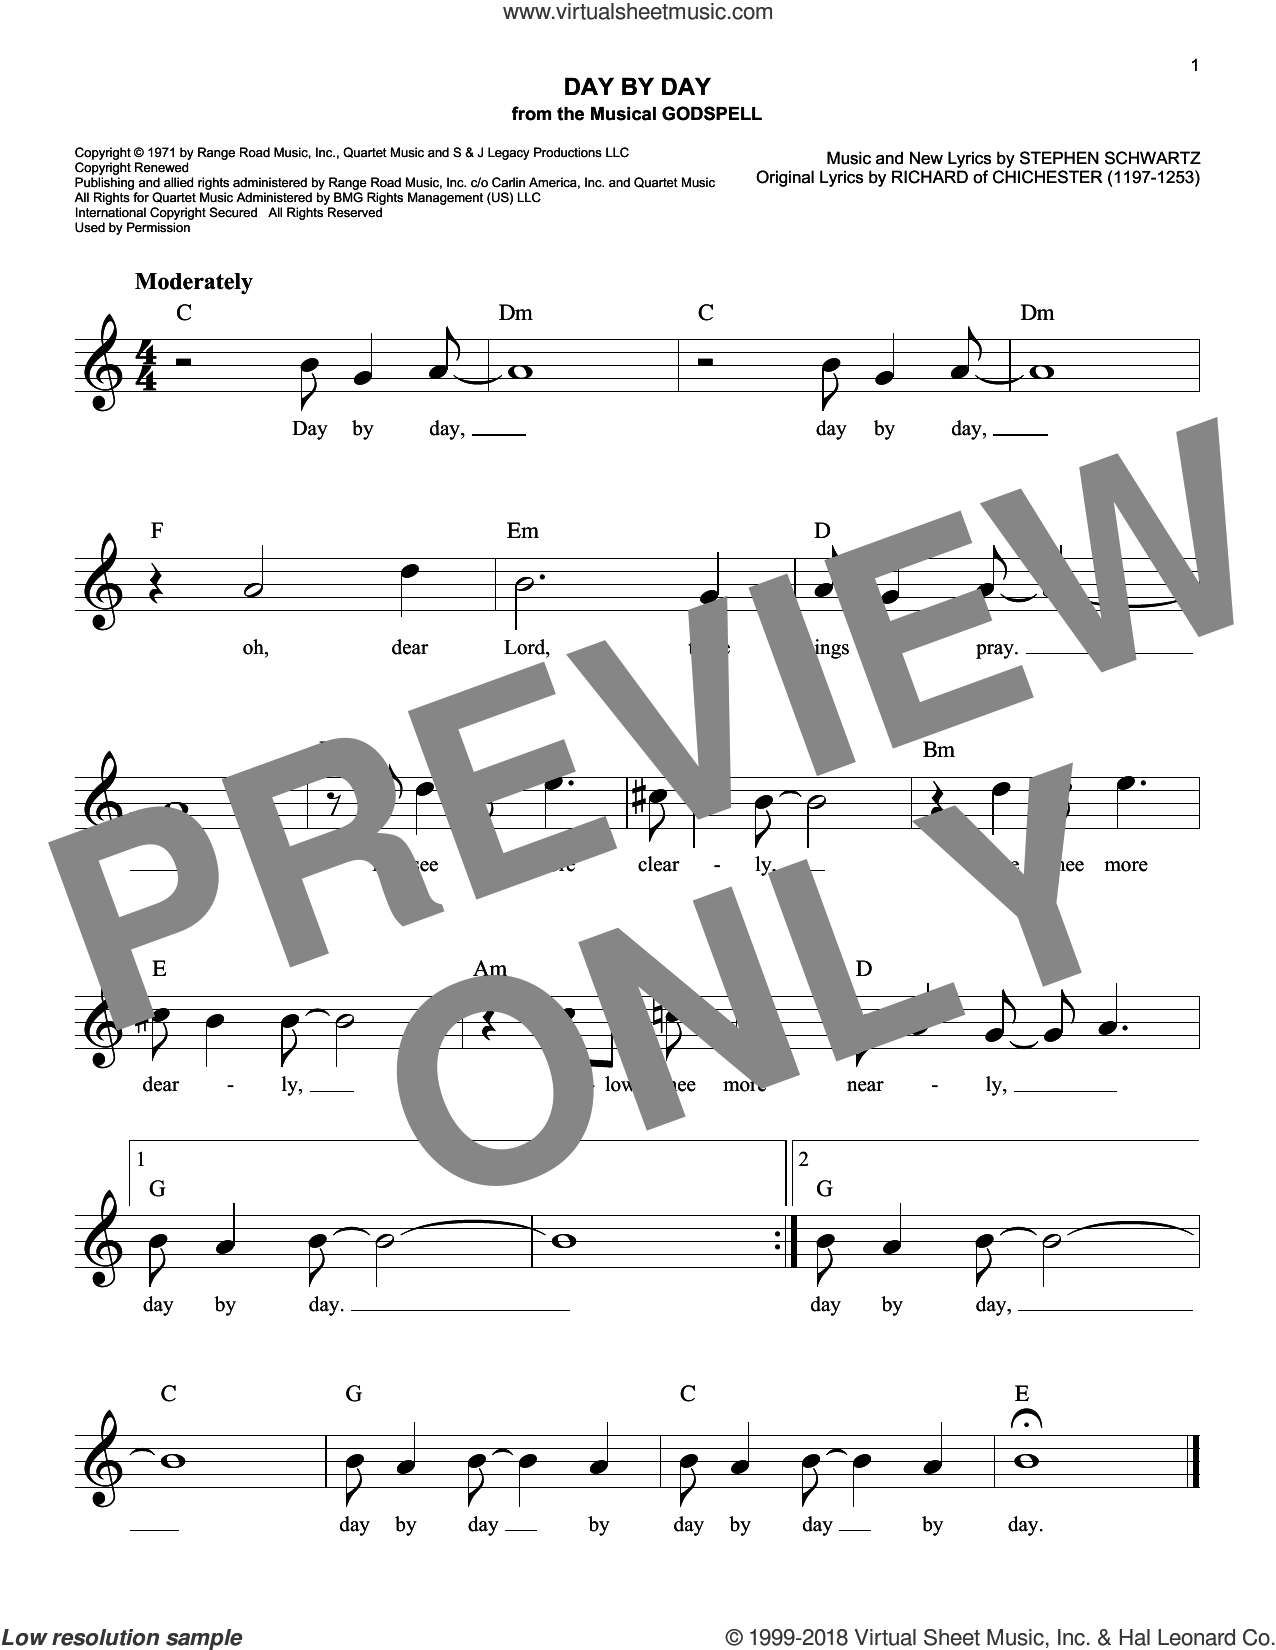 Day By Day sheet music for voice and other instruments (fake book) by Stephen Schwartz and Richard of Chichester, intermediate skill level